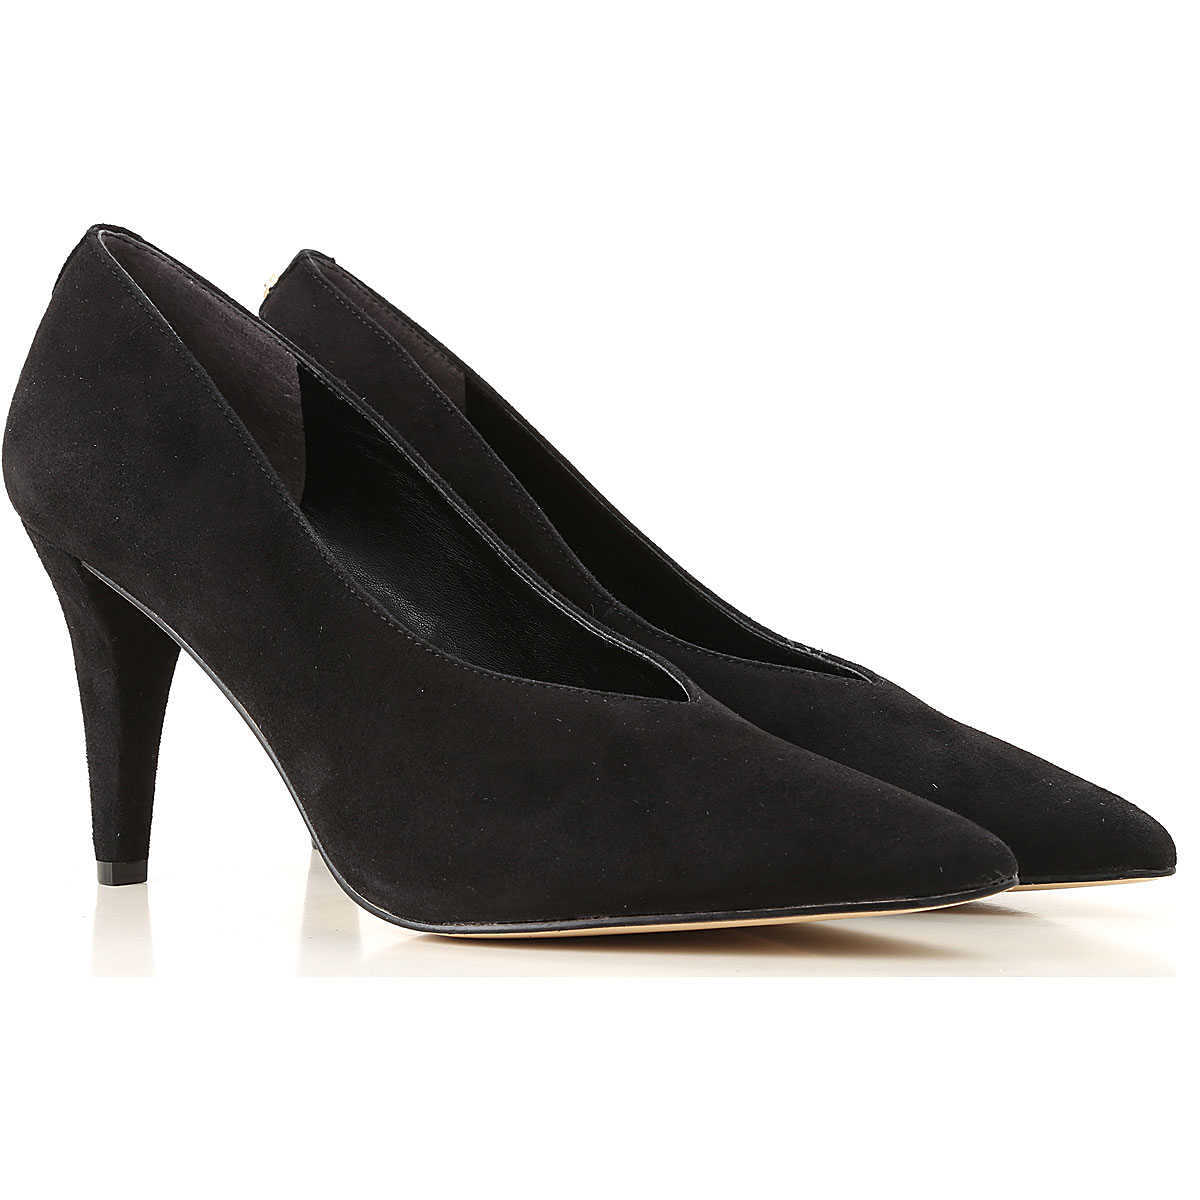 Guess Pumps & High Heels for Women in Outlet Black Canada - GOOFASH - Womens PUMPS